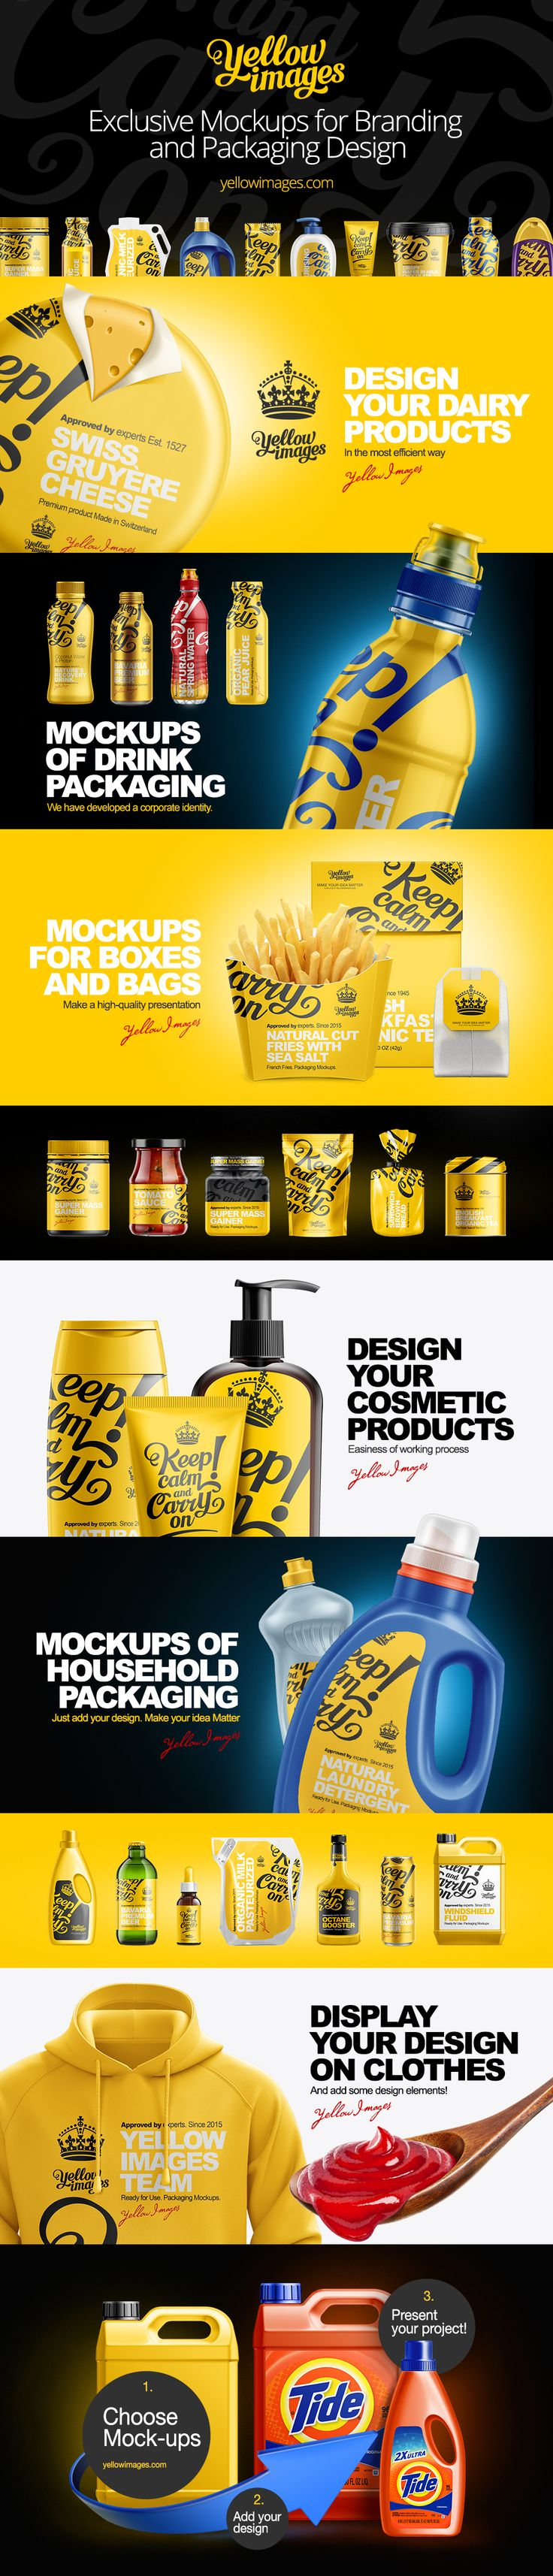 Yellow Images is the first-class online stock of unique design assets. The stock contains the full range of mockups for various packaging, transport, clothes, sport garments, media, etc. All the mockups are highly detailed and ready for your design. Join the Yellow Images!